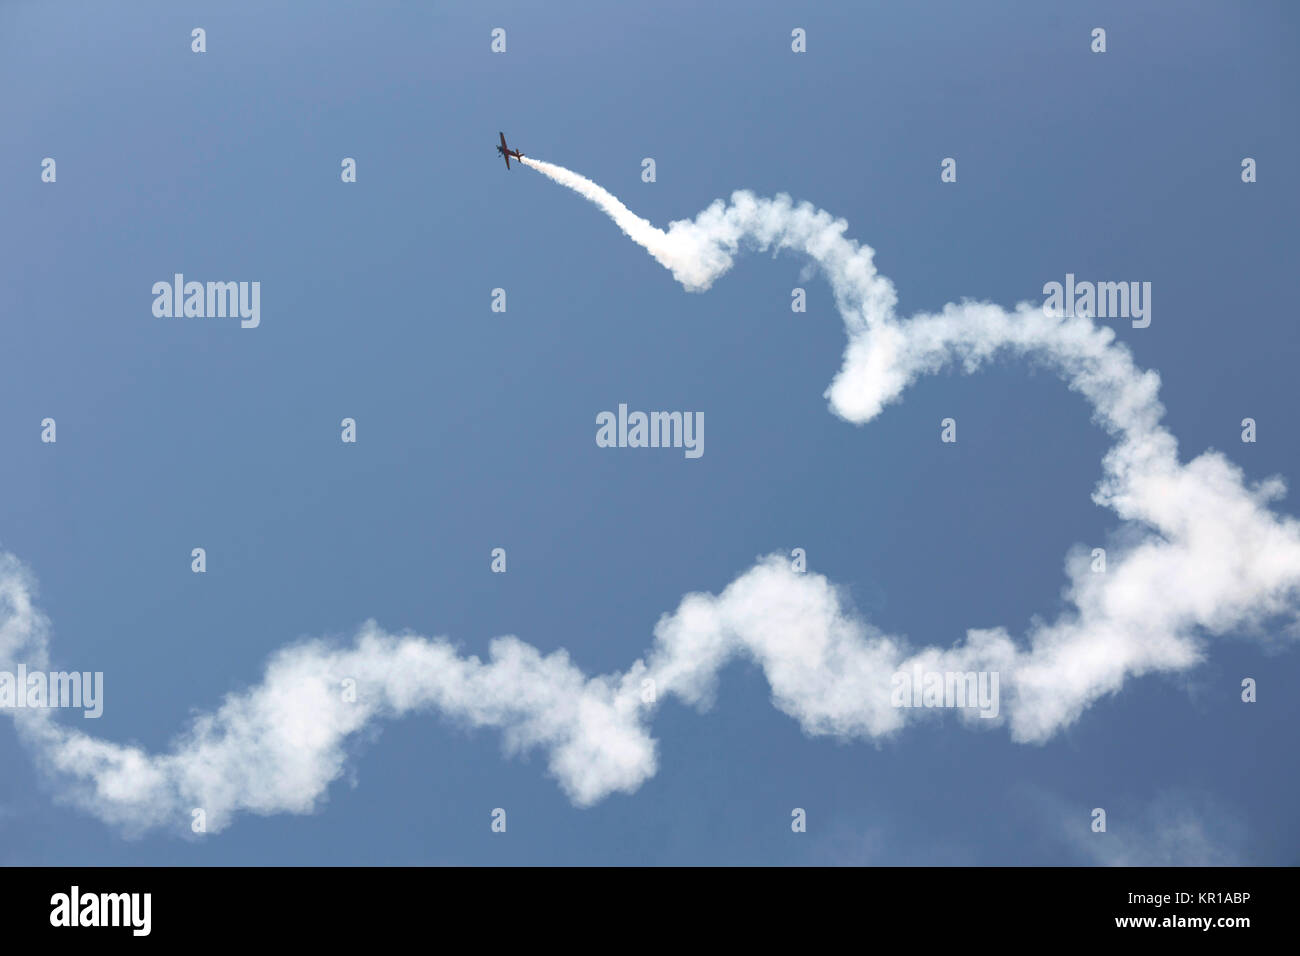 Aerobatic plane with a white smoke trail in sky. - Stock Image